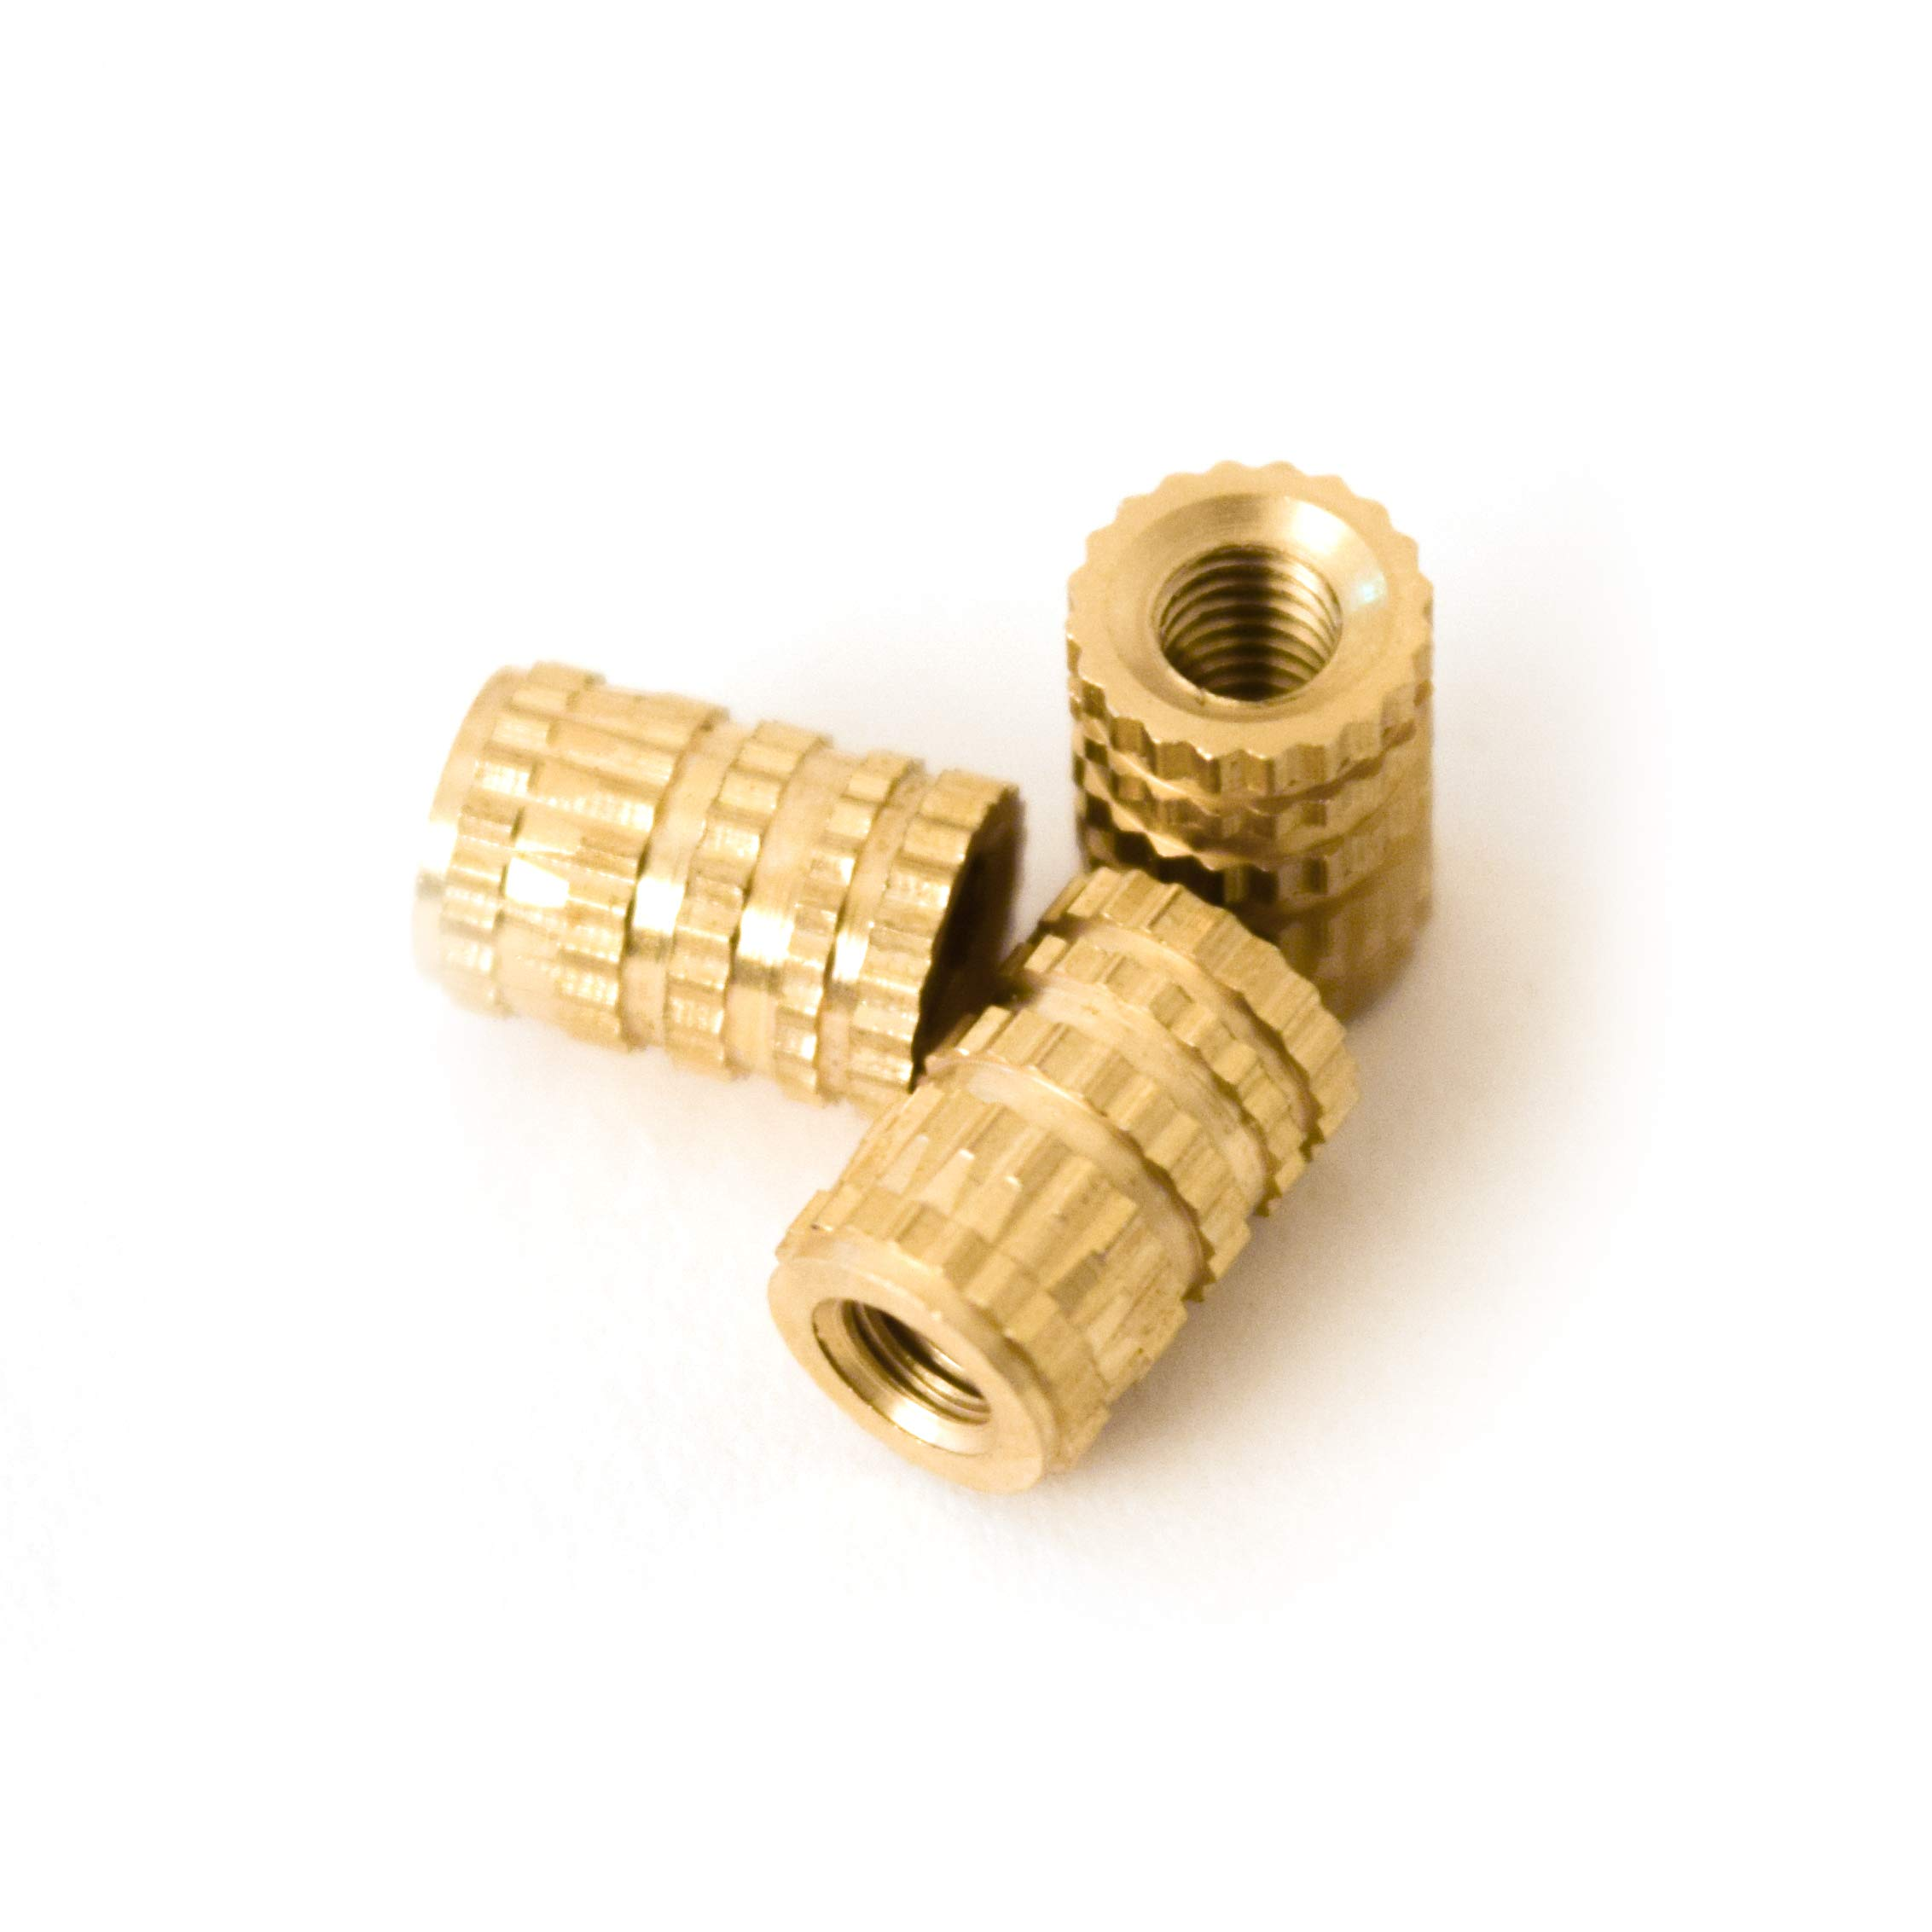 [ J&J Products ] M3 Brass Insert, 8 mm (Length), Female Thread, Press Fit/Injection Mold Type, 100 pcs by J&J Products